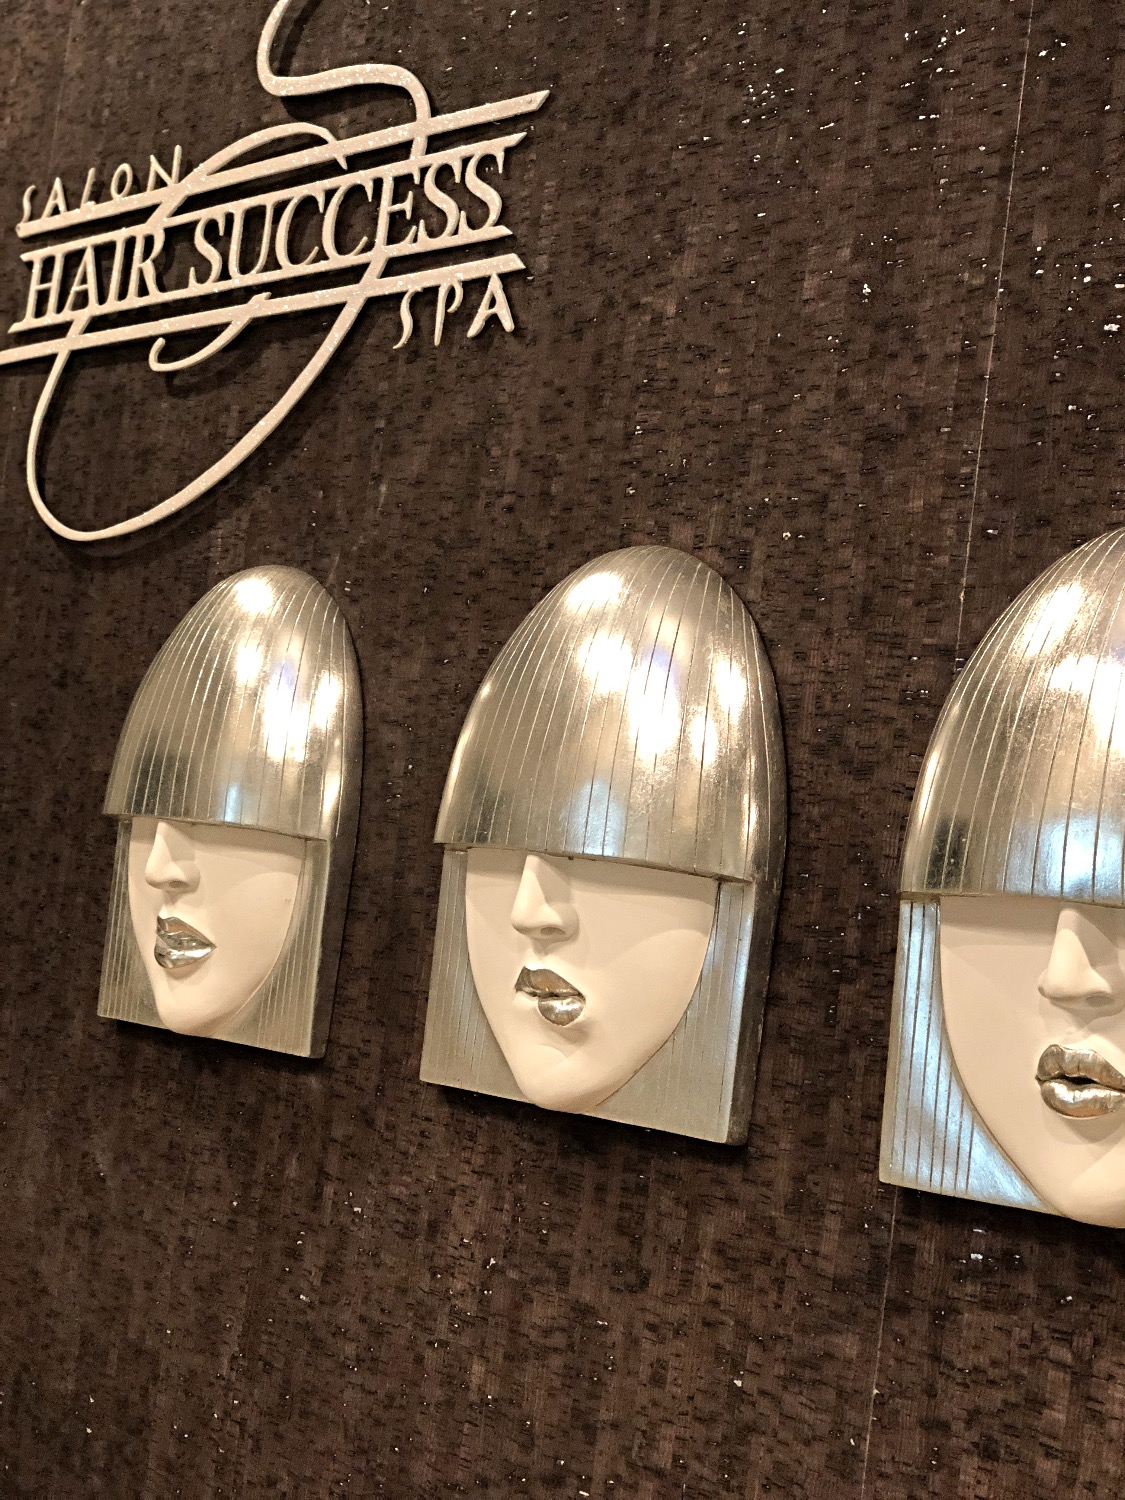 Hair Success wall decor